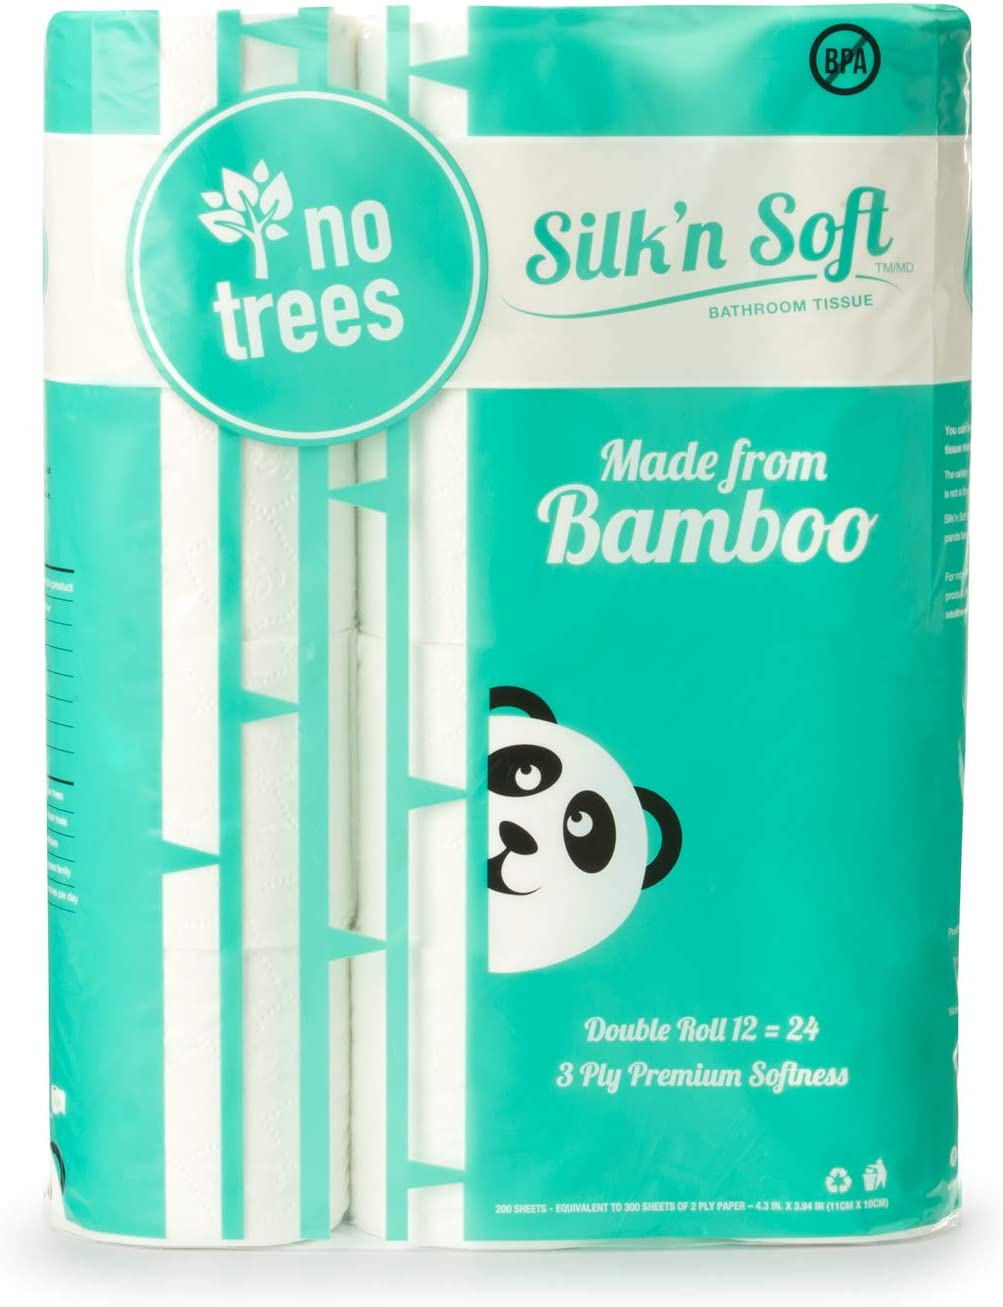 Silk'n Soft Bamboo Toilet Paper is a biodegradable toilet paper made out of bamboo